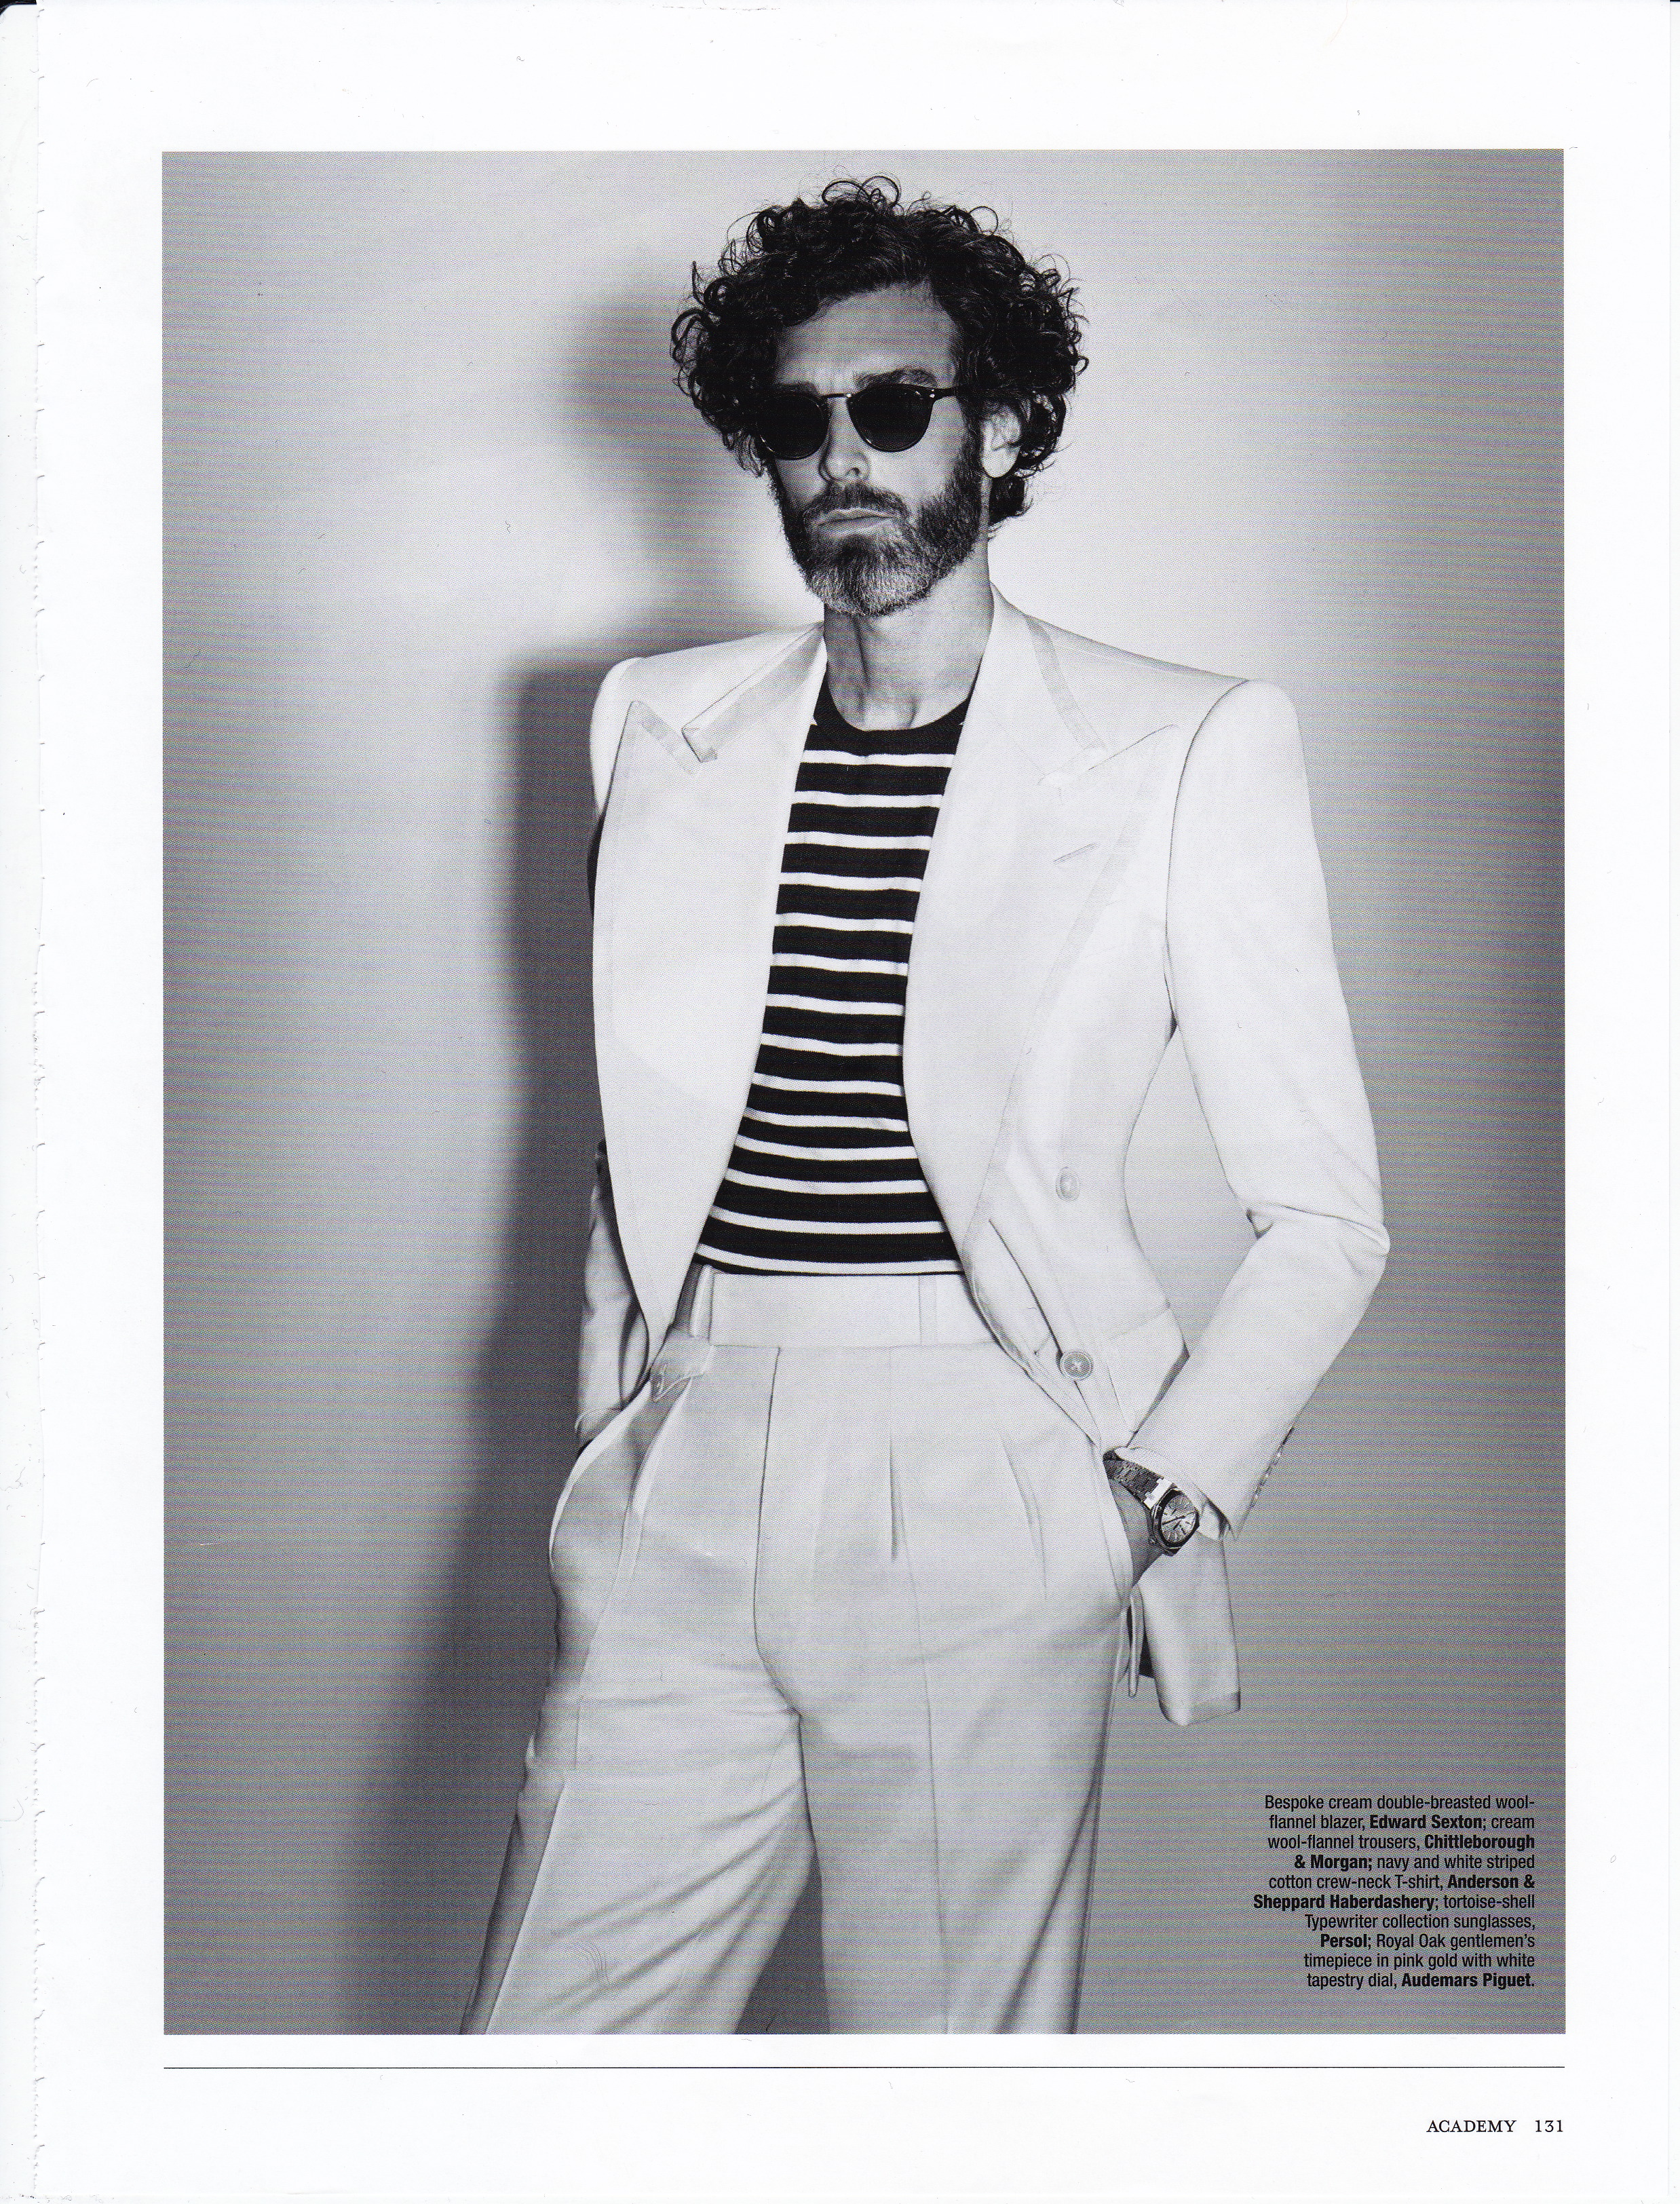 9edcf6f09f5c6b The Rake Magazine Issue 40, editorial features 'Men In White' and 'L'Eau  Sauvage'. Top: Edward Sexton sky blue cotton shirt with contrast white  collar ...